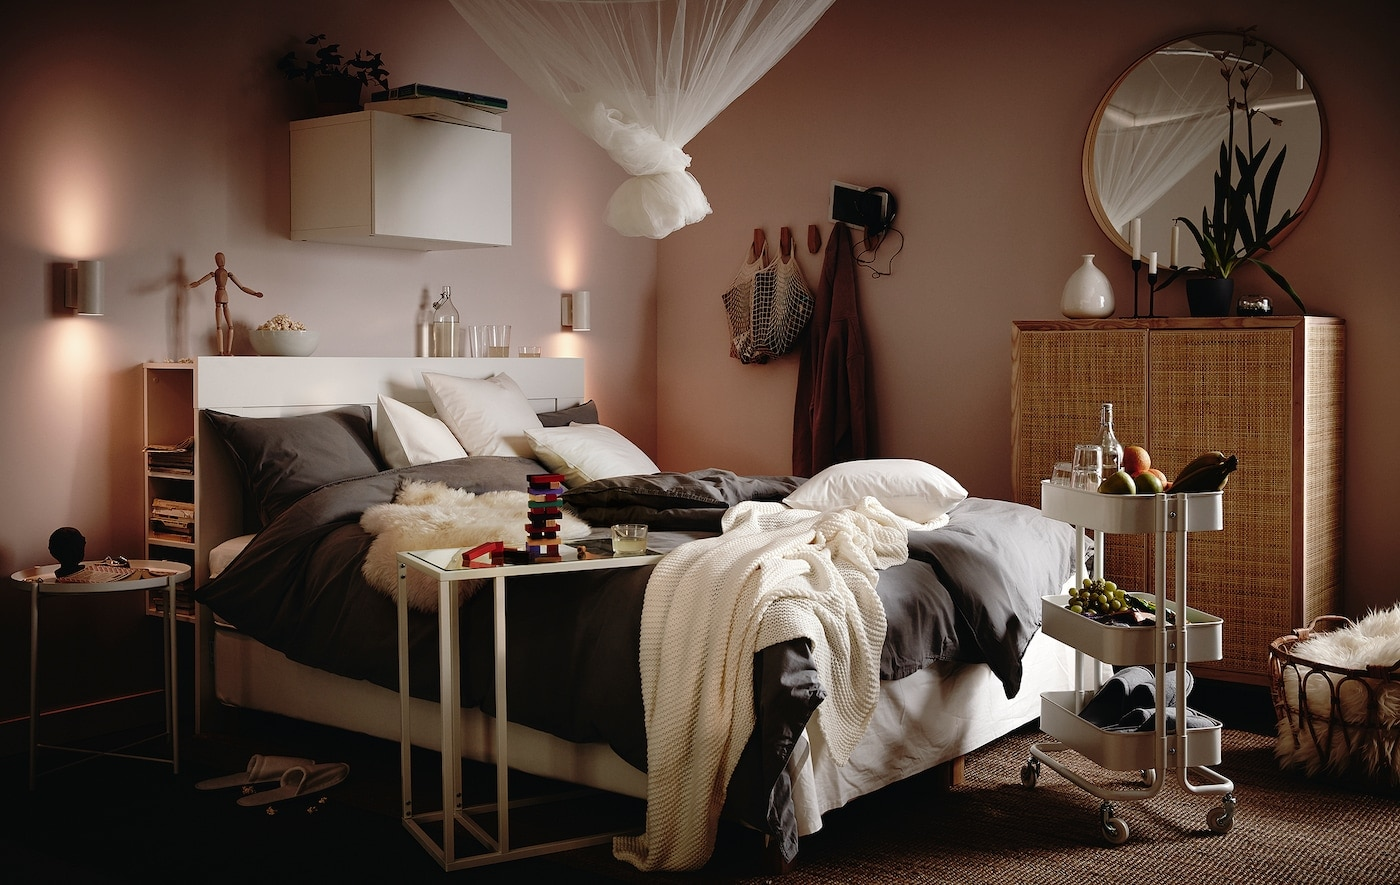 Bed laden with fluffy bedding, cushions and throws, trolley with snacks and drink beside it, a net in a knot hanging above.